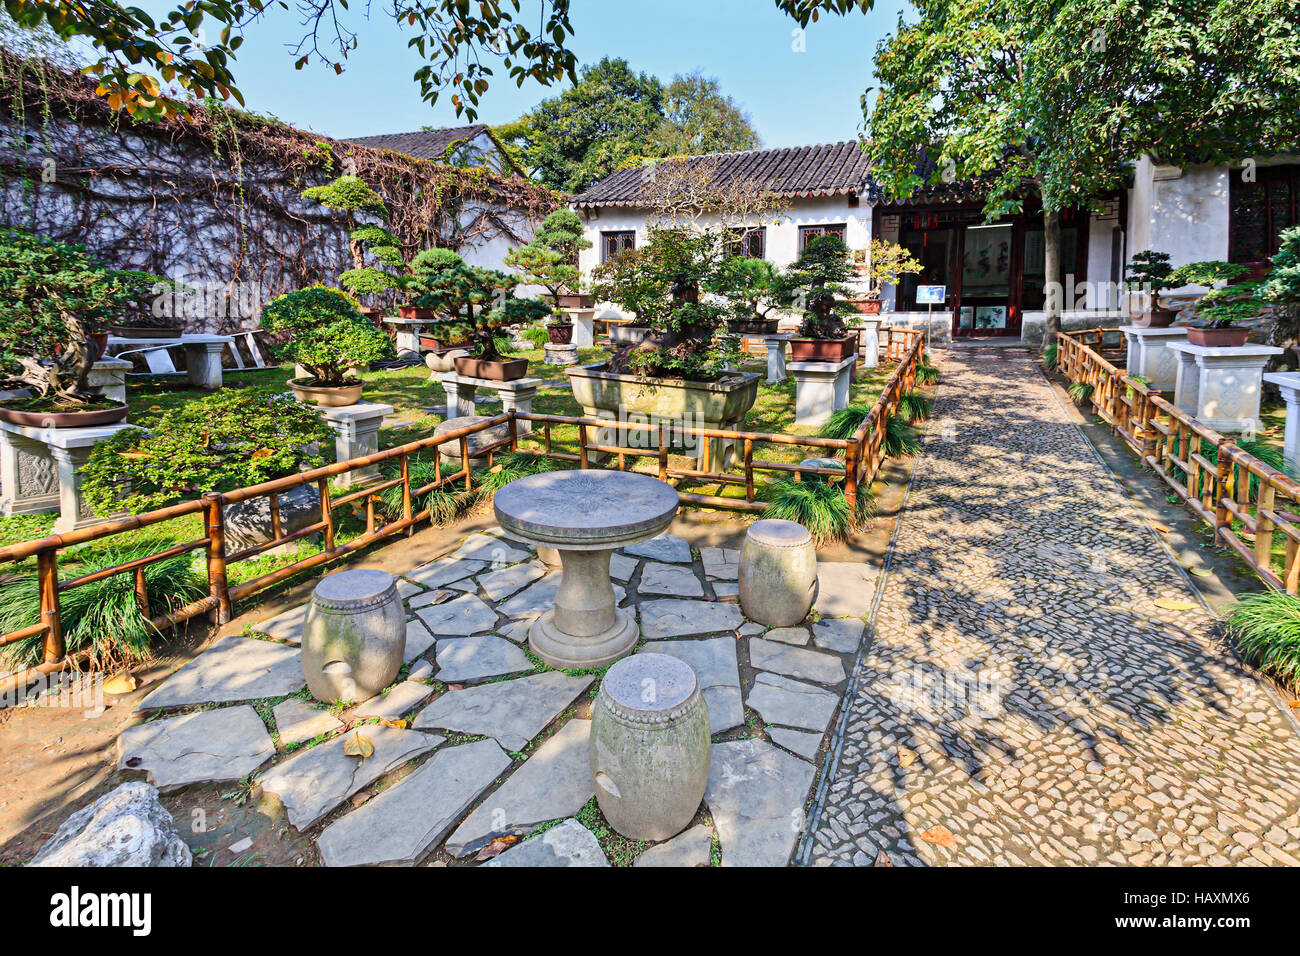 Traditional Chinese Garden Of Miniature Bonsai Trees In Pots Cultivated Suzhou Lingering Outdoors Decoration Fencing And Care Front